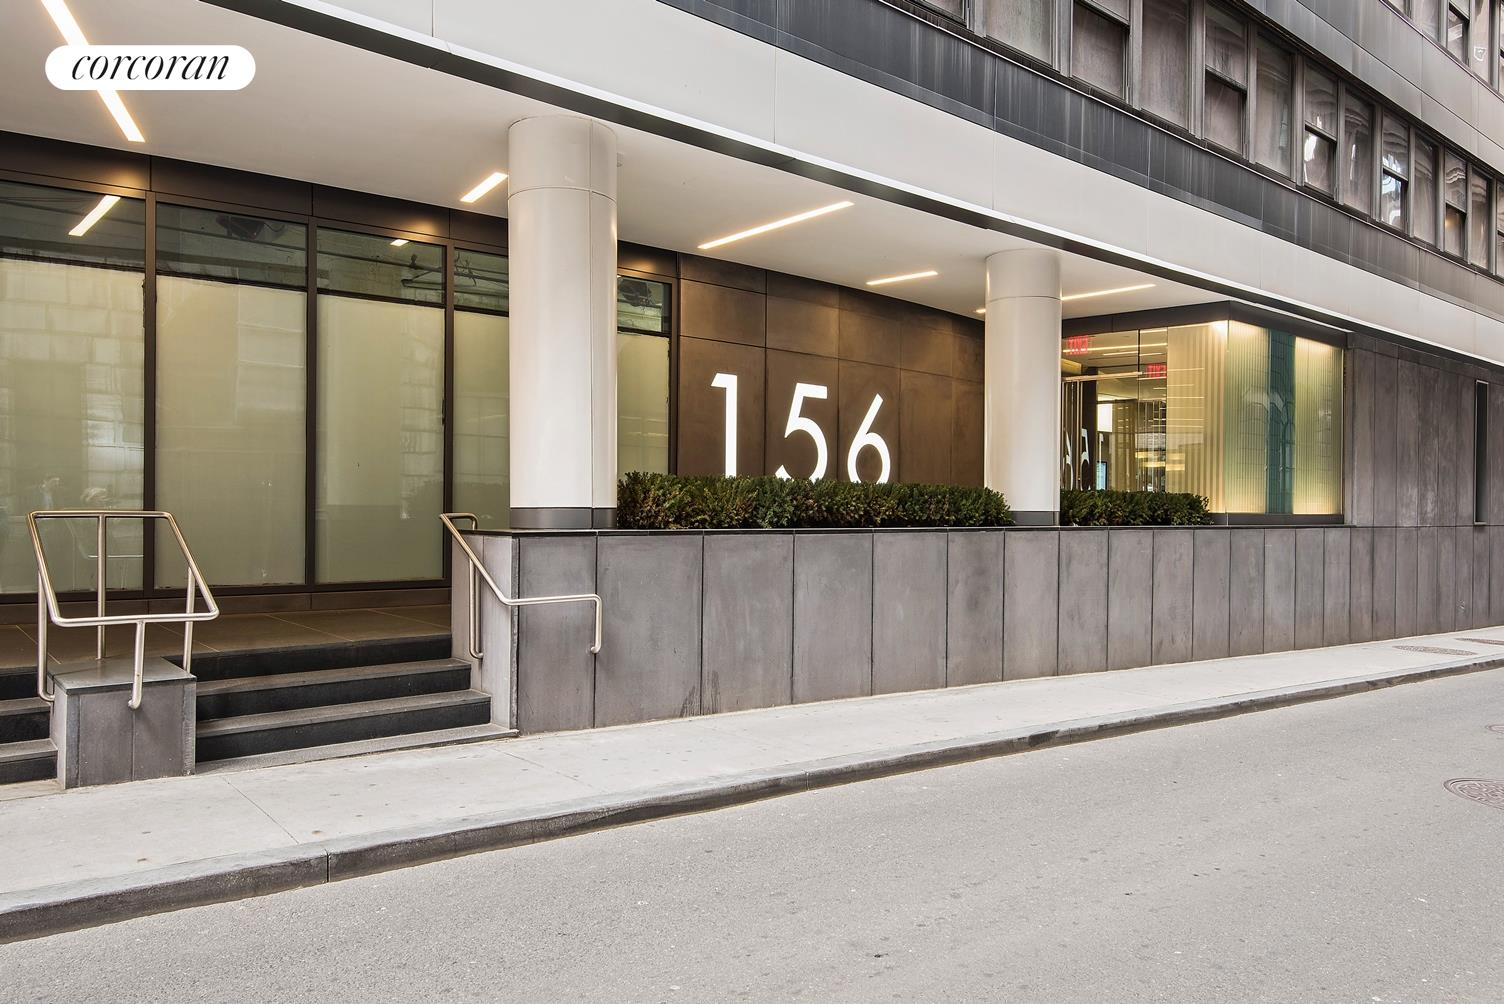 156 WILLIAM ST, Medical, Other Listing Photo